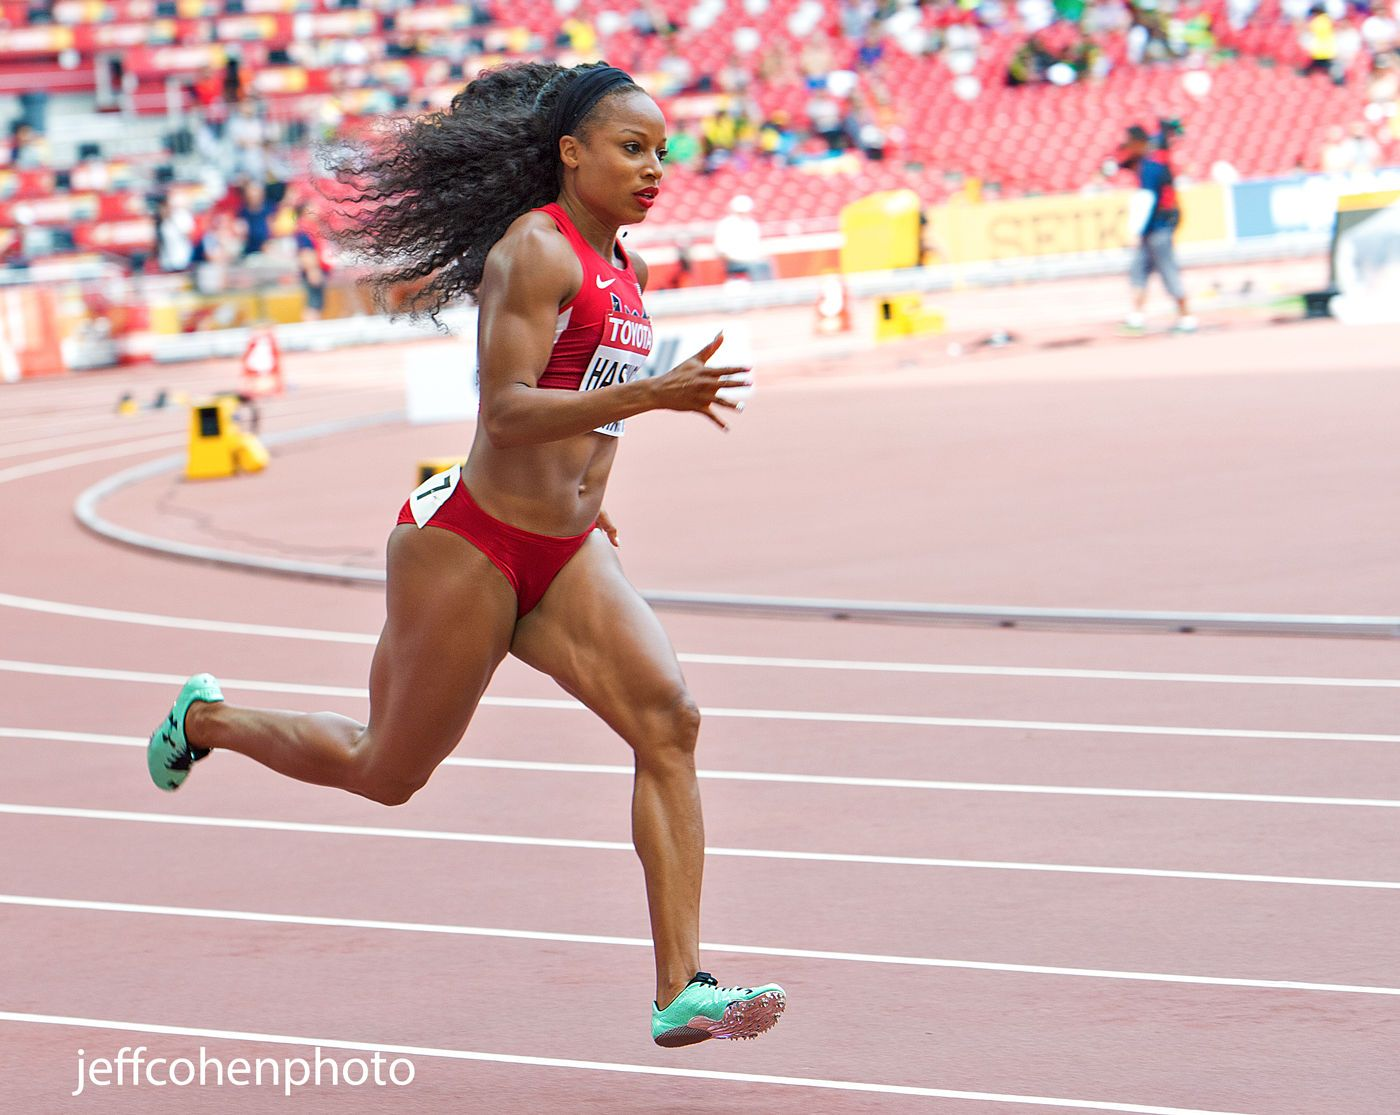 1beijing2015_day3_hastings_400m_heat_jeff_cohen_photo_9918_web.jpg